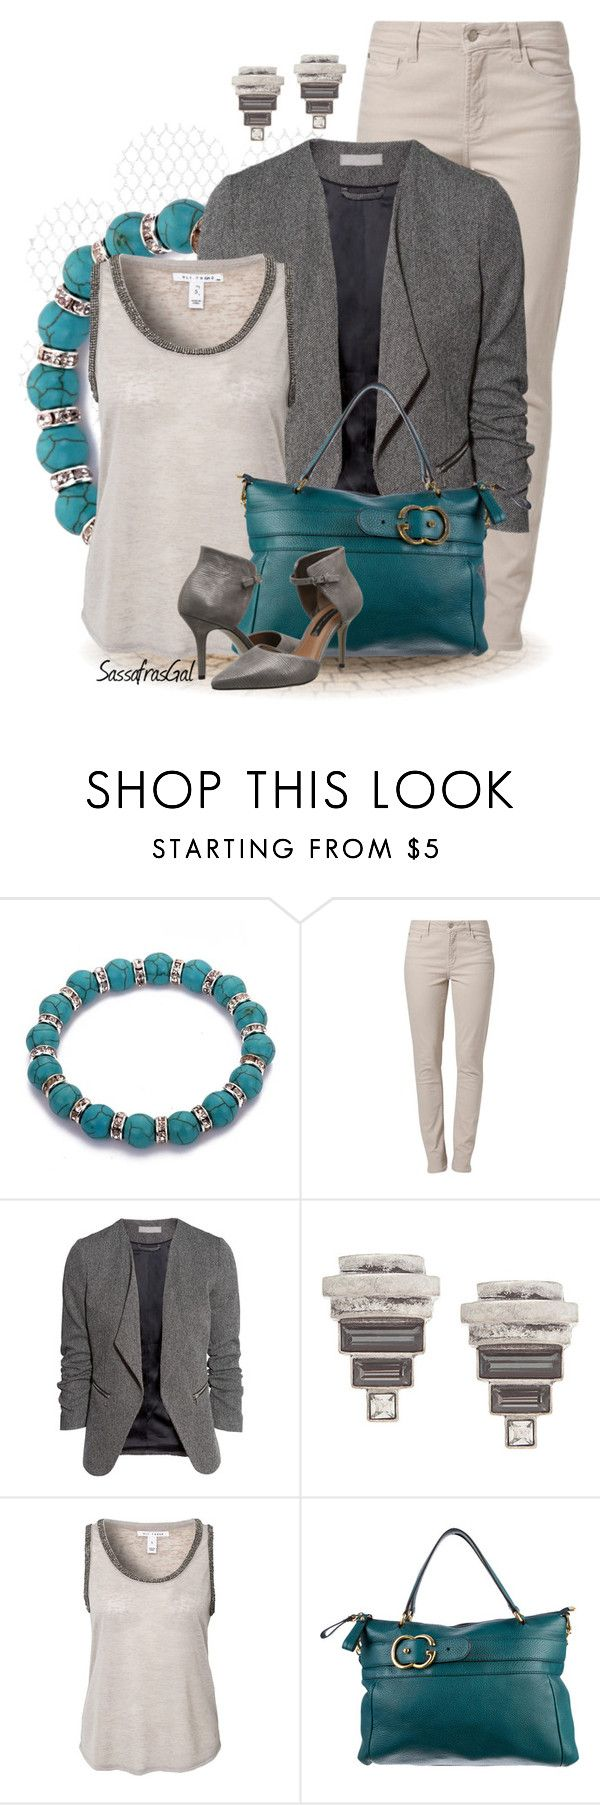 """Pop of Turquoise"" by sassafrasgal ❤ liked on Polyvore featuring NYDJ, H&M, Lane Bryant, NLY Trend, Gucci and Steven"